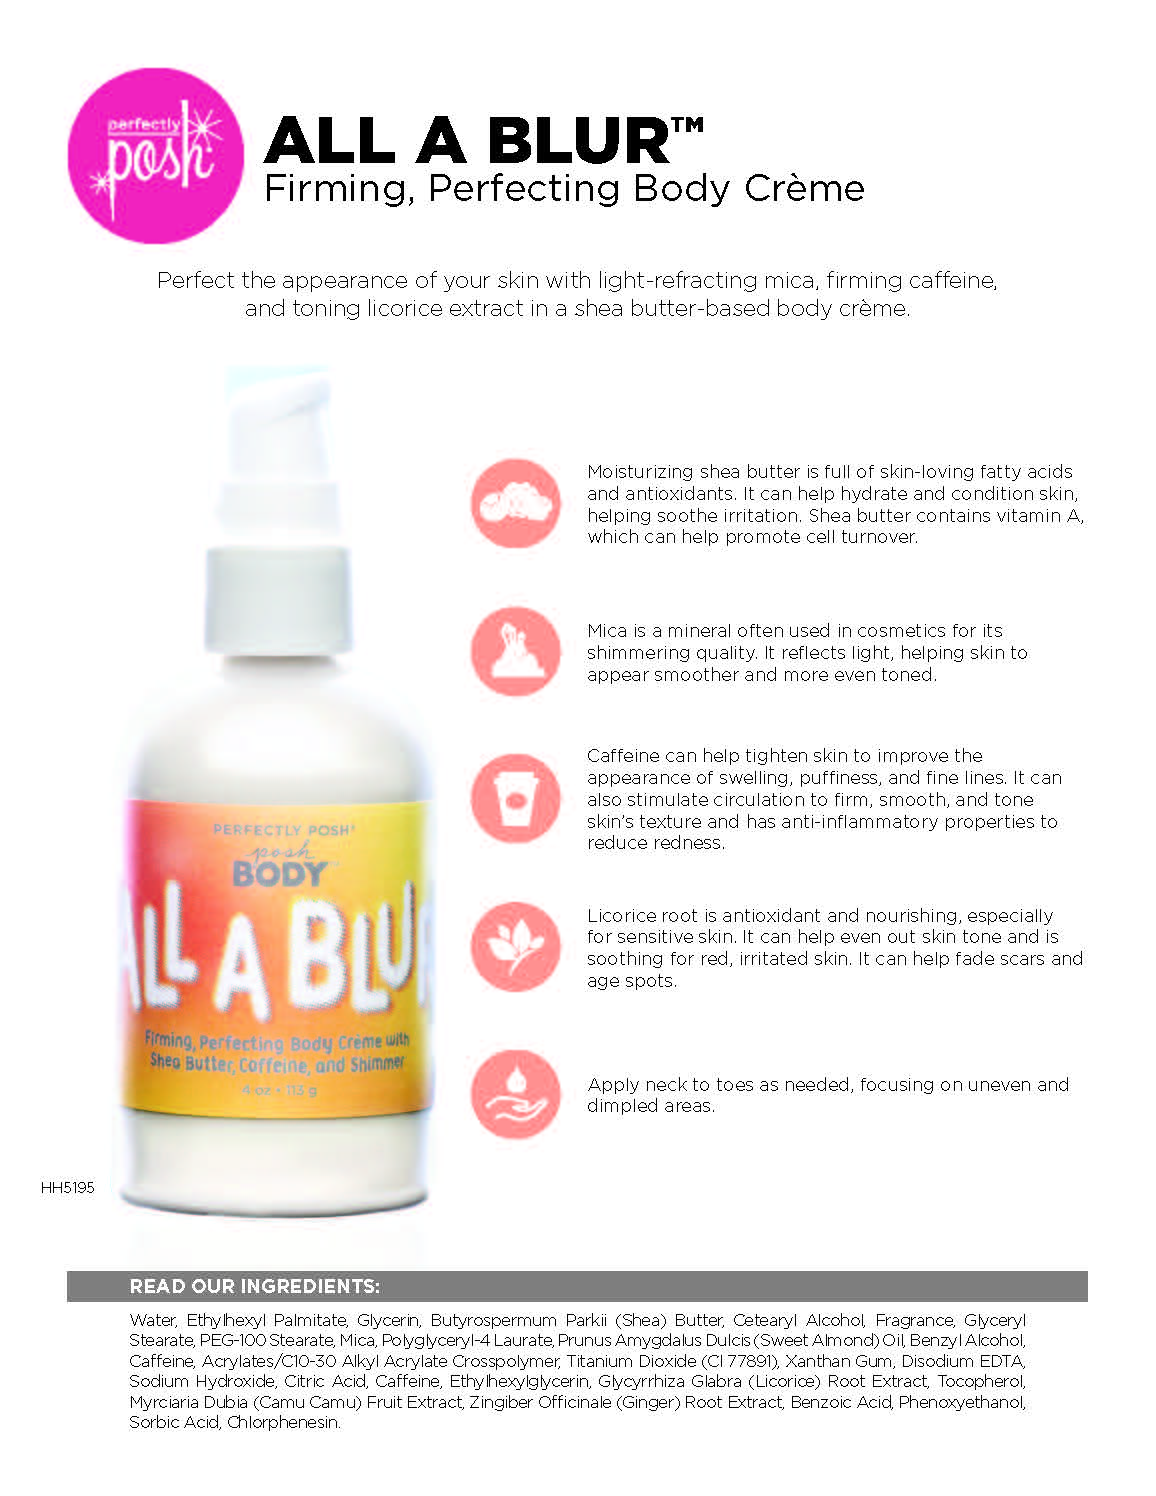 All A Blur Firming, Perfecting Body Crème